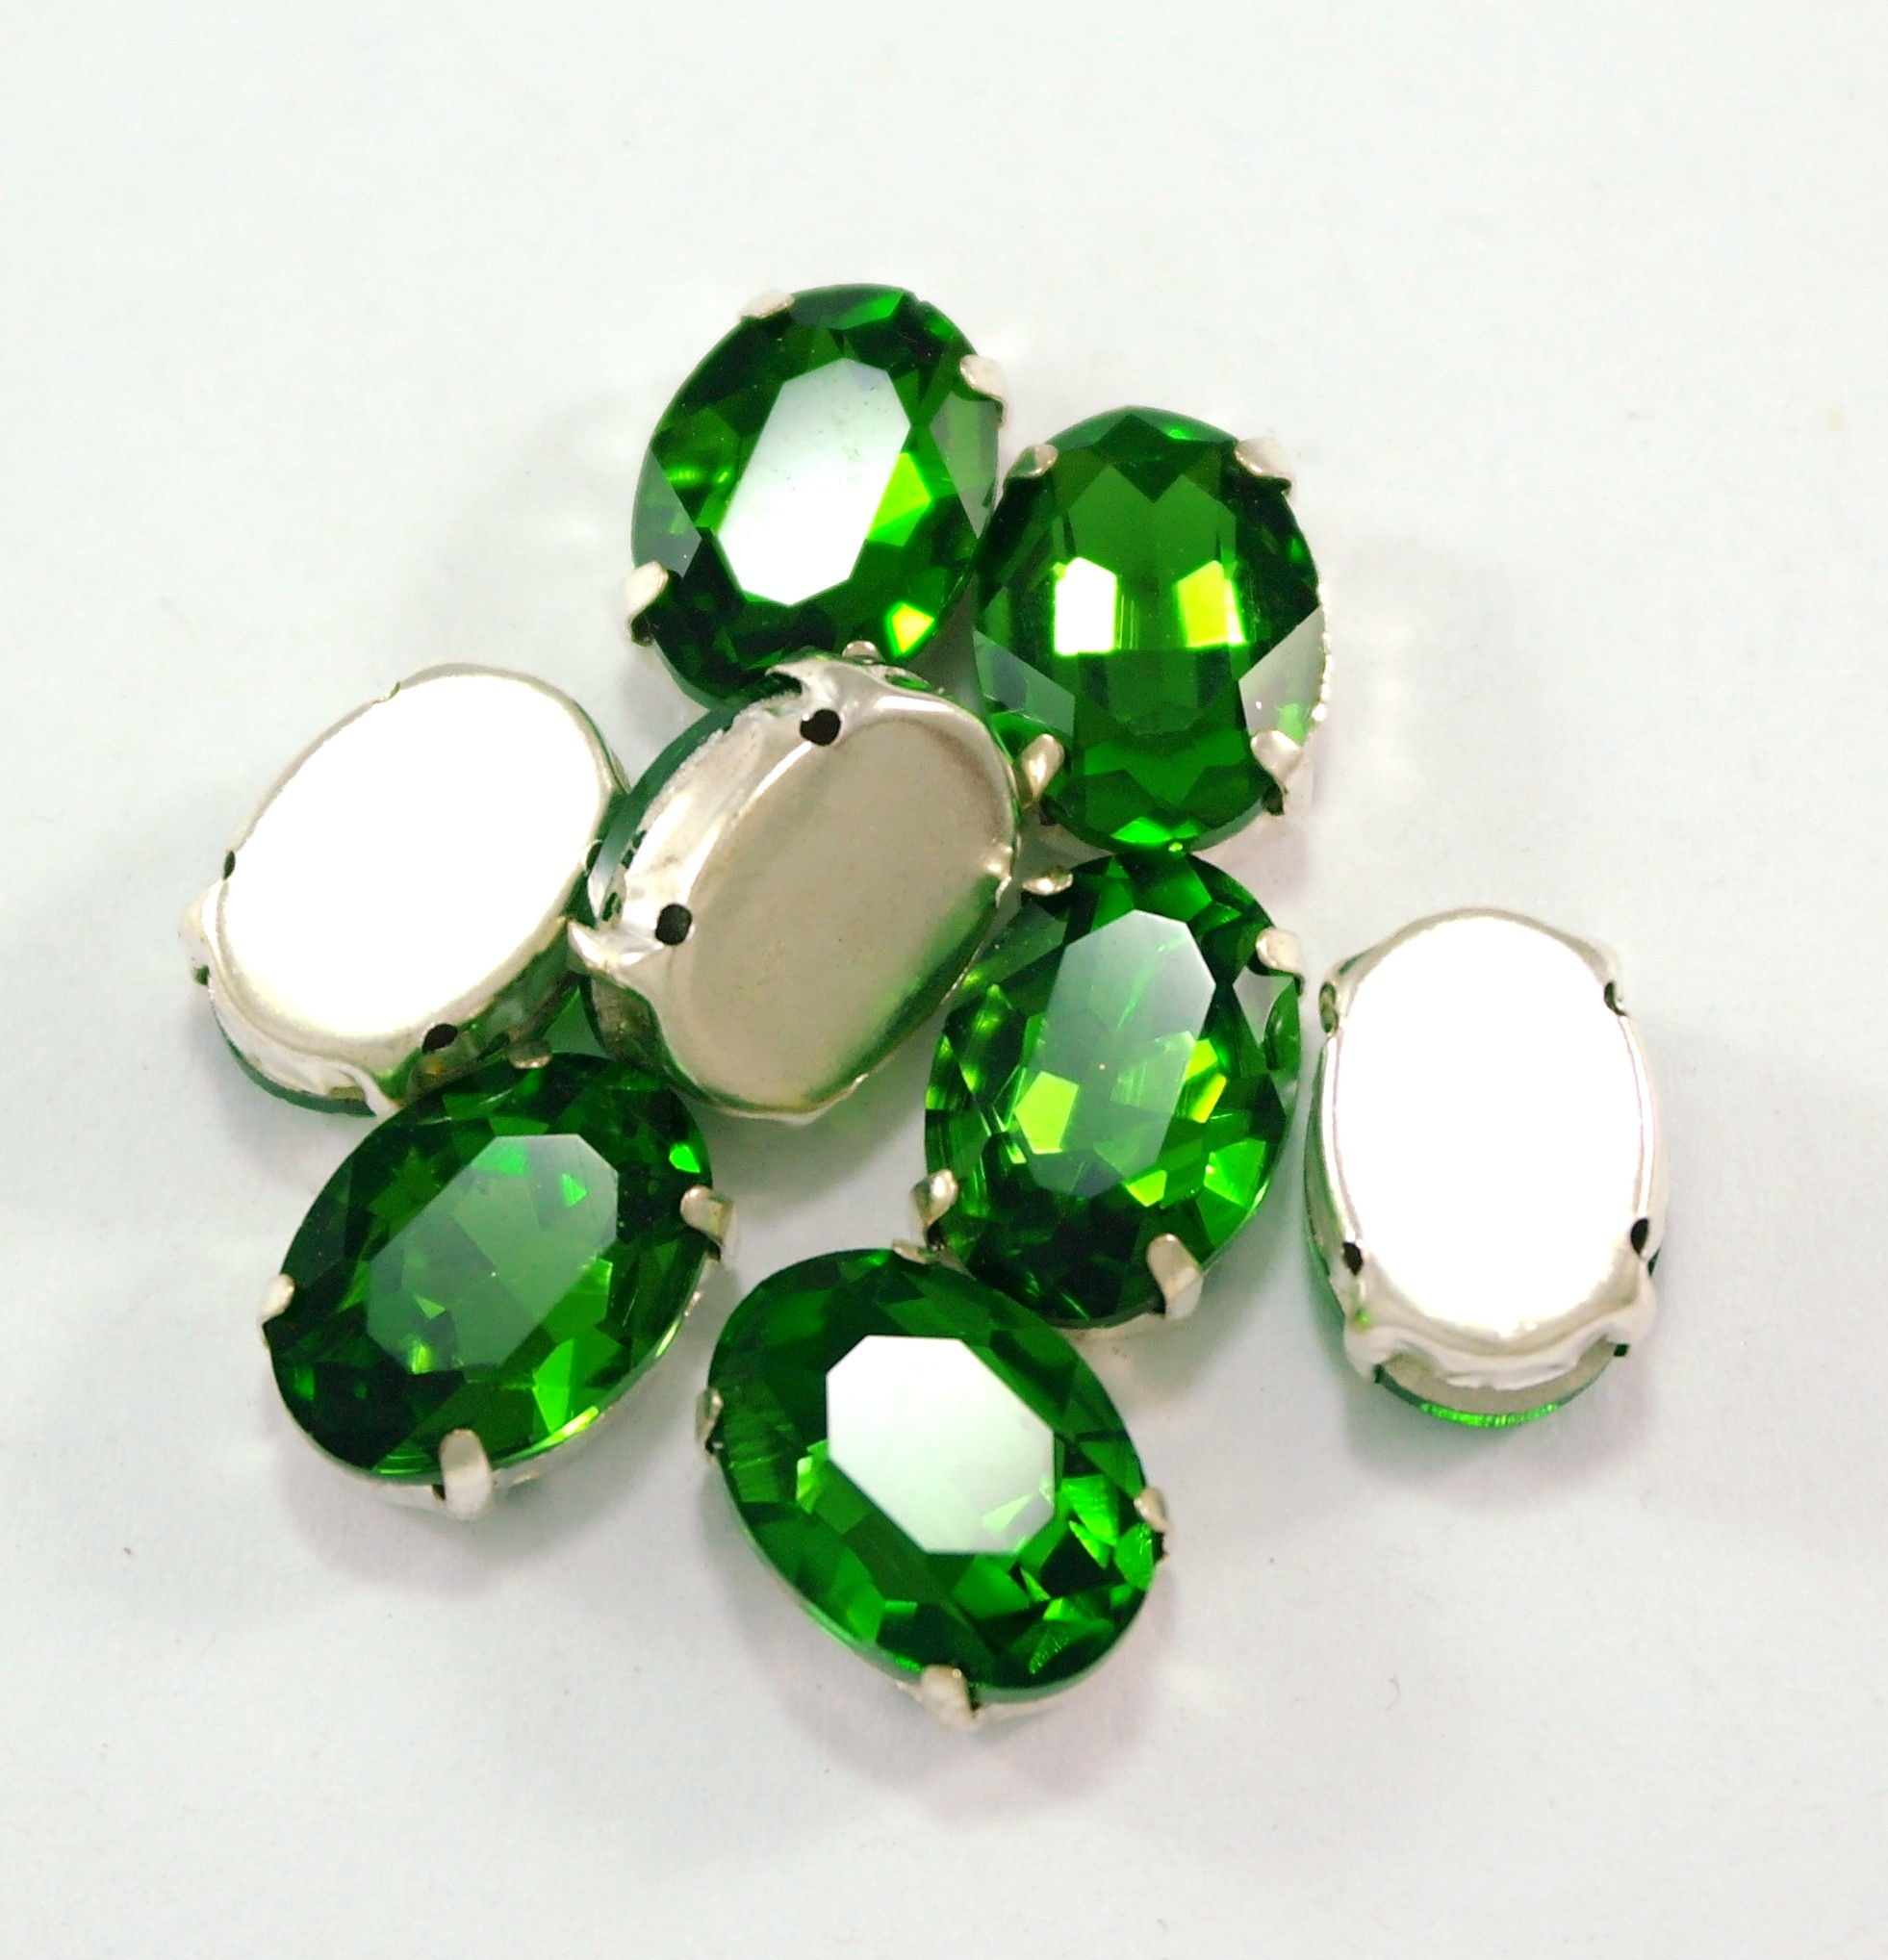 GLASS BEADS - GREEN OVAL (O8)